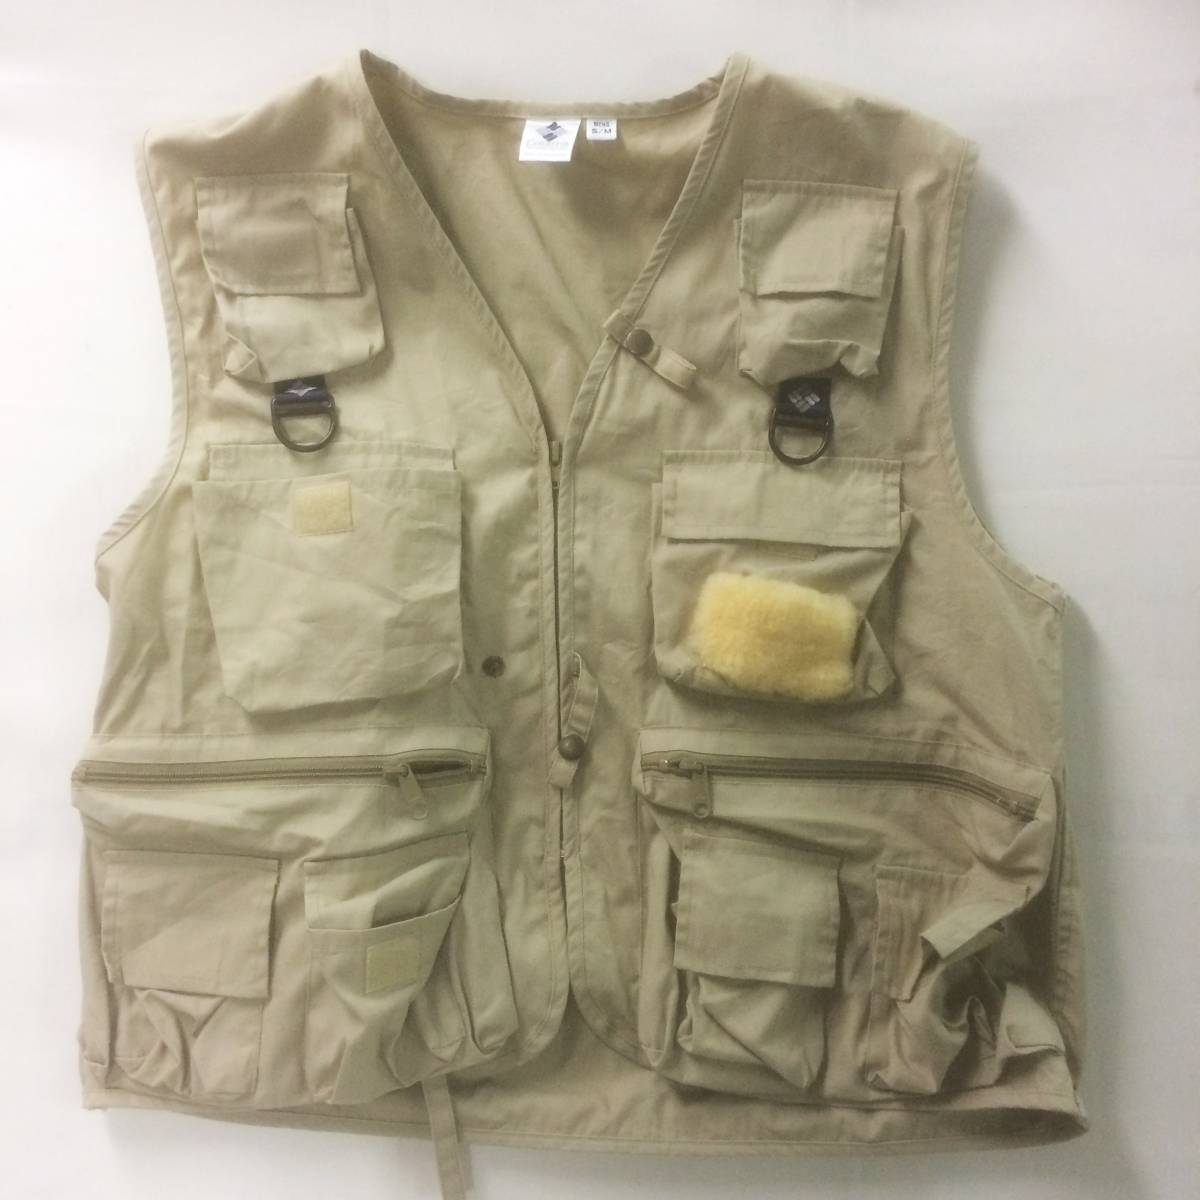 f3486255738ee Columbia Colombia fishing vest fishing vest beige s m Philippines made hunting  hunting piling put on .. Layered